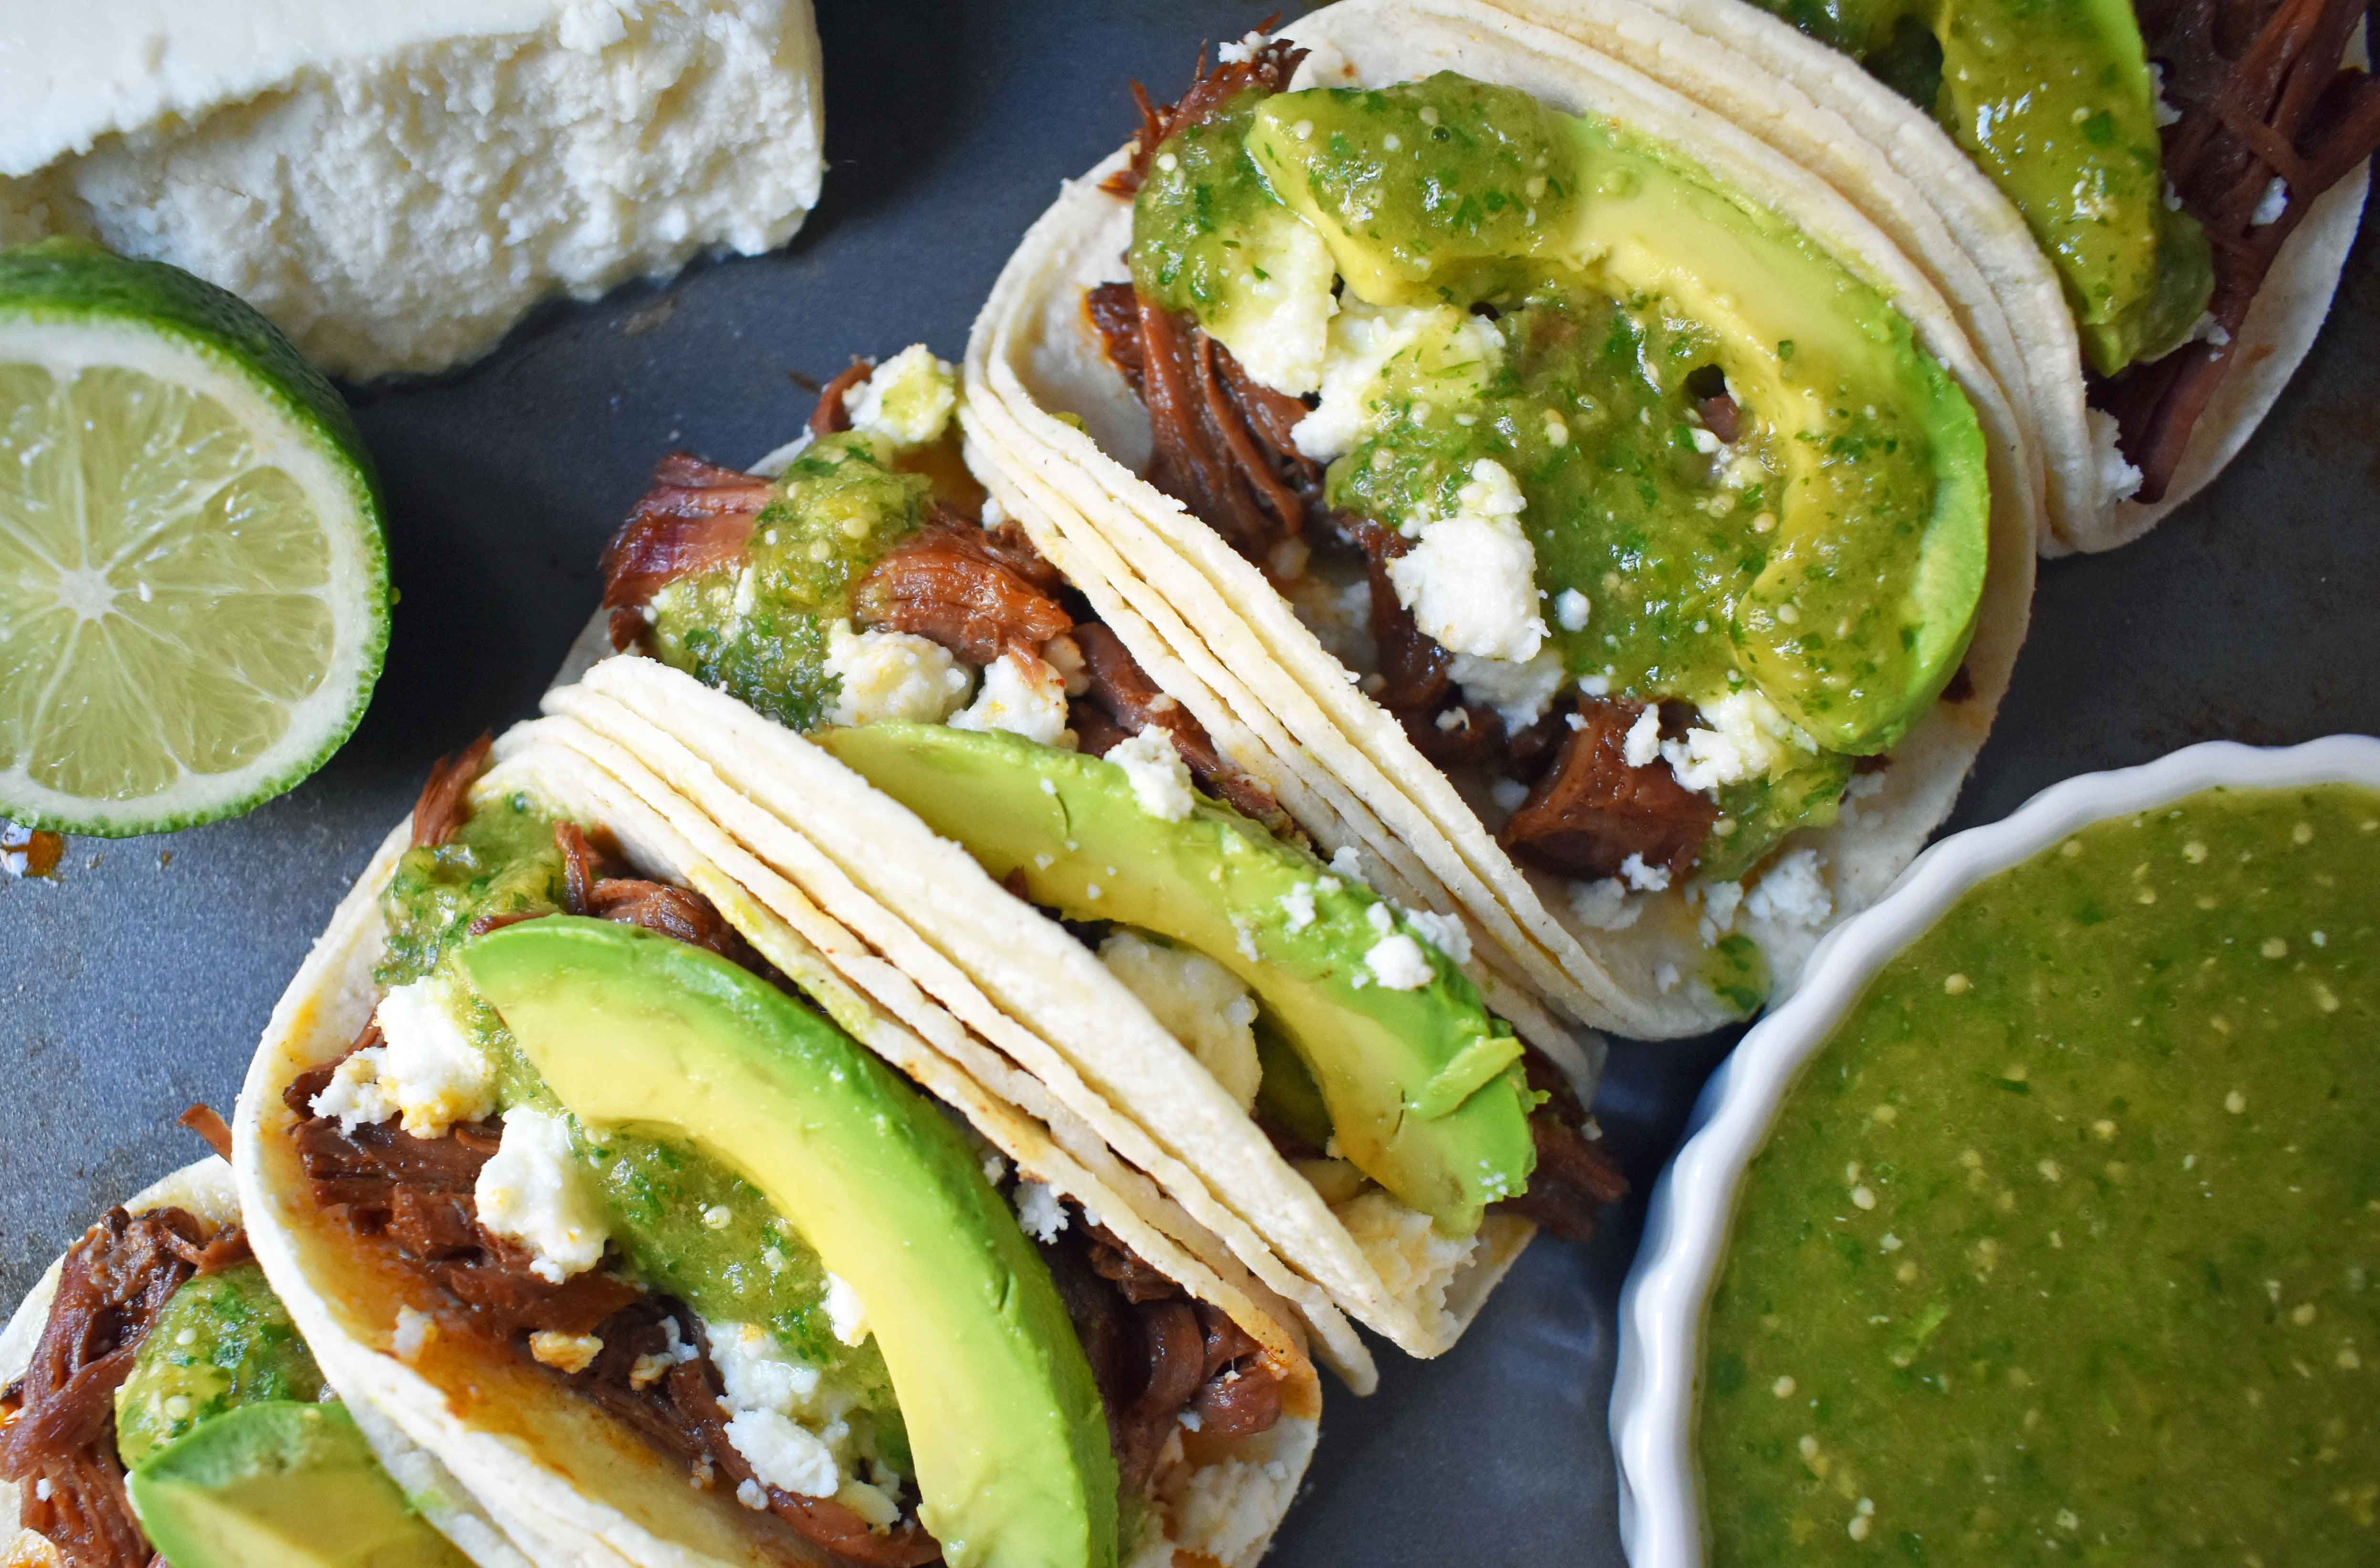 Slow Cooker Beef Barbacoa Tacos with Homemade Tomatillo Salsa. Tender spicy beef barbacoa made in slow cooker and topped with fresh avocado, queso fresco cheese, and homemade tomatillo salsa. www.modernhoney.com